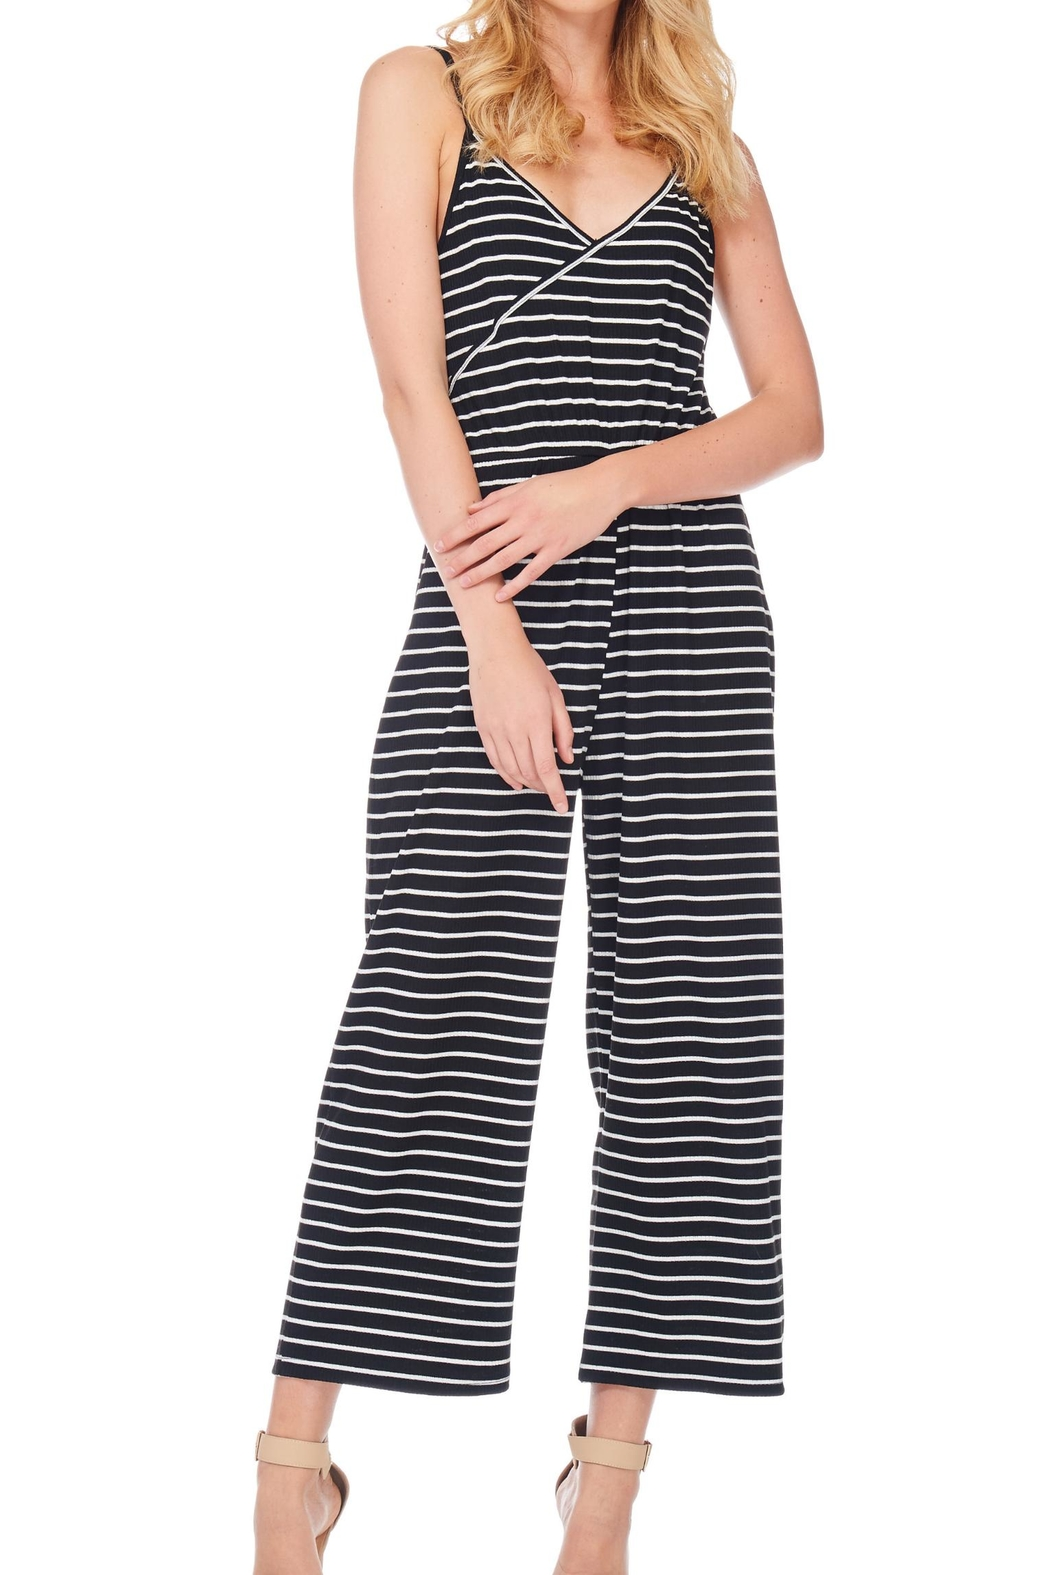 Anama Striped Surplice Romper - Main Image